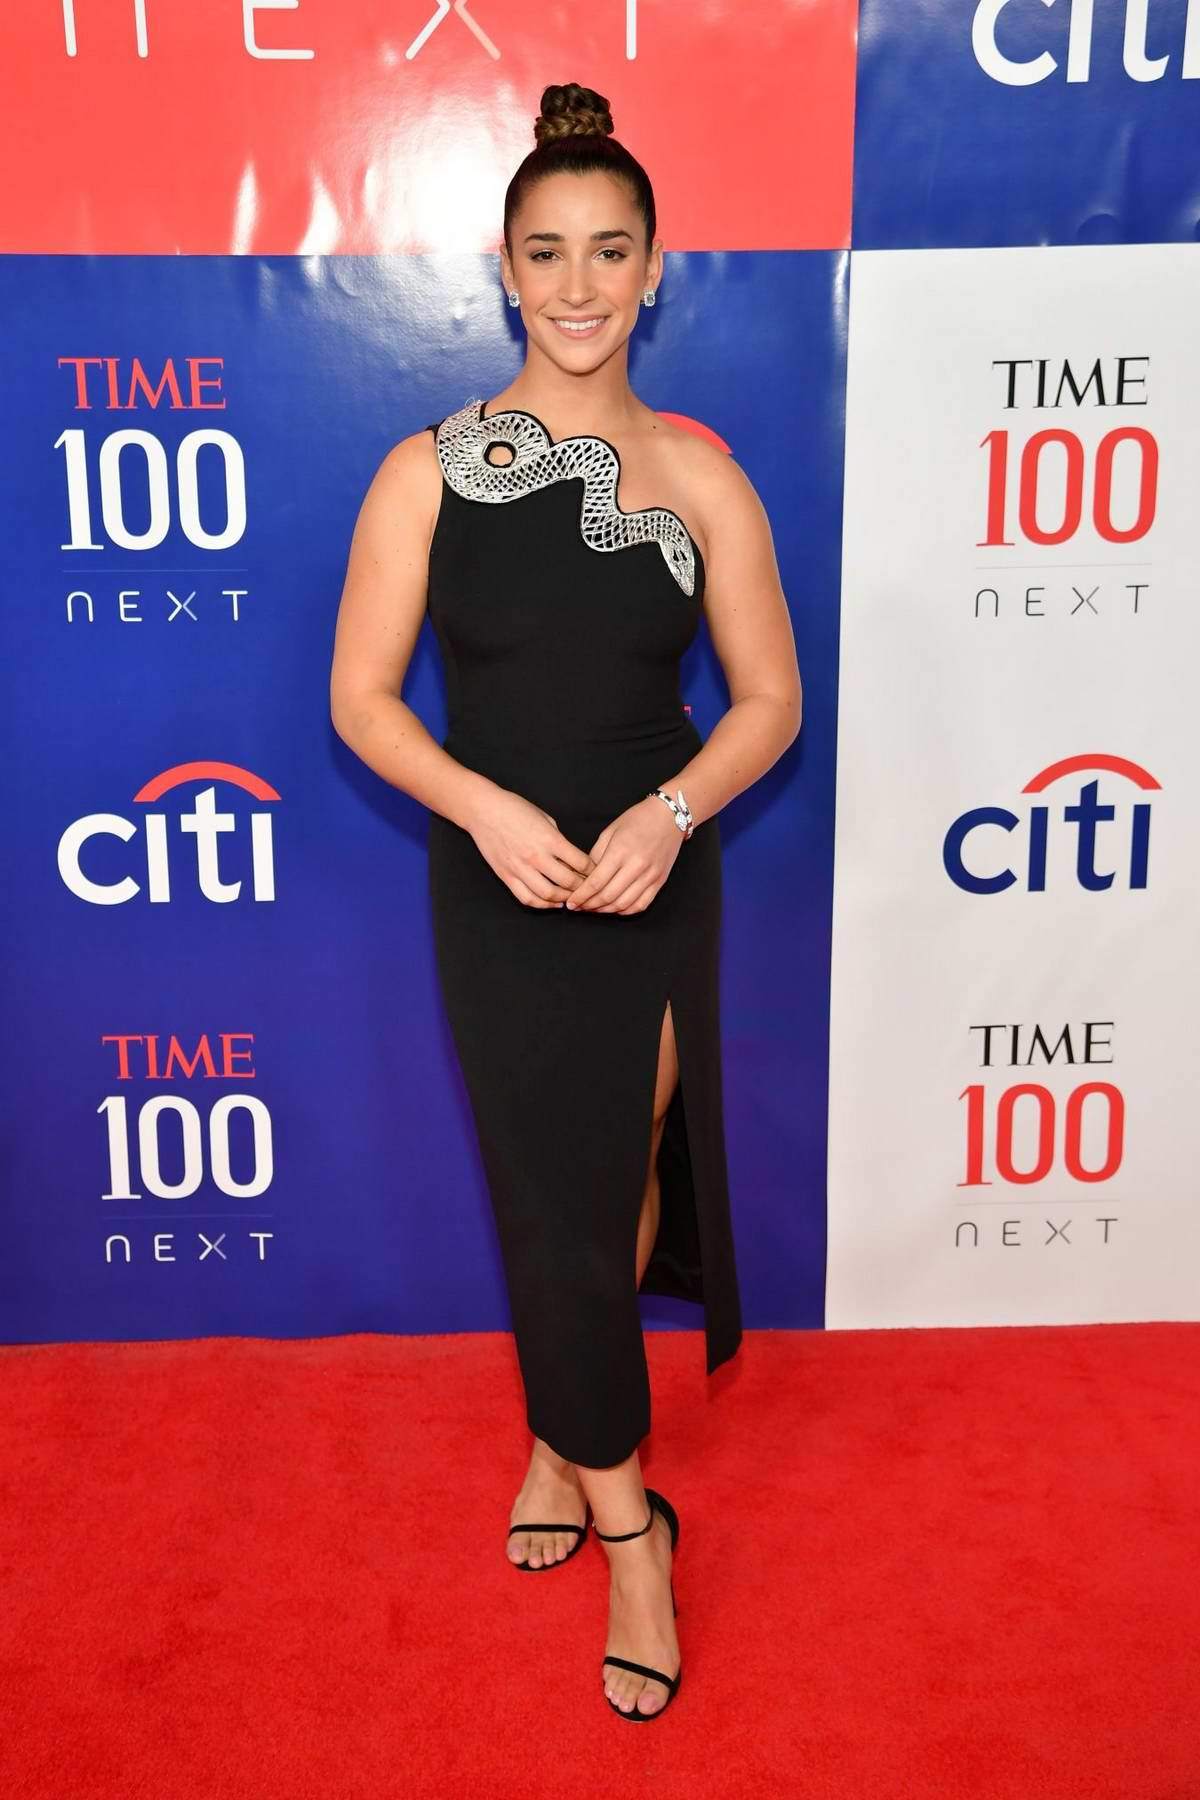 Aly Raisman attends TIME 100 Next 2019 at Pier 17 in New York City